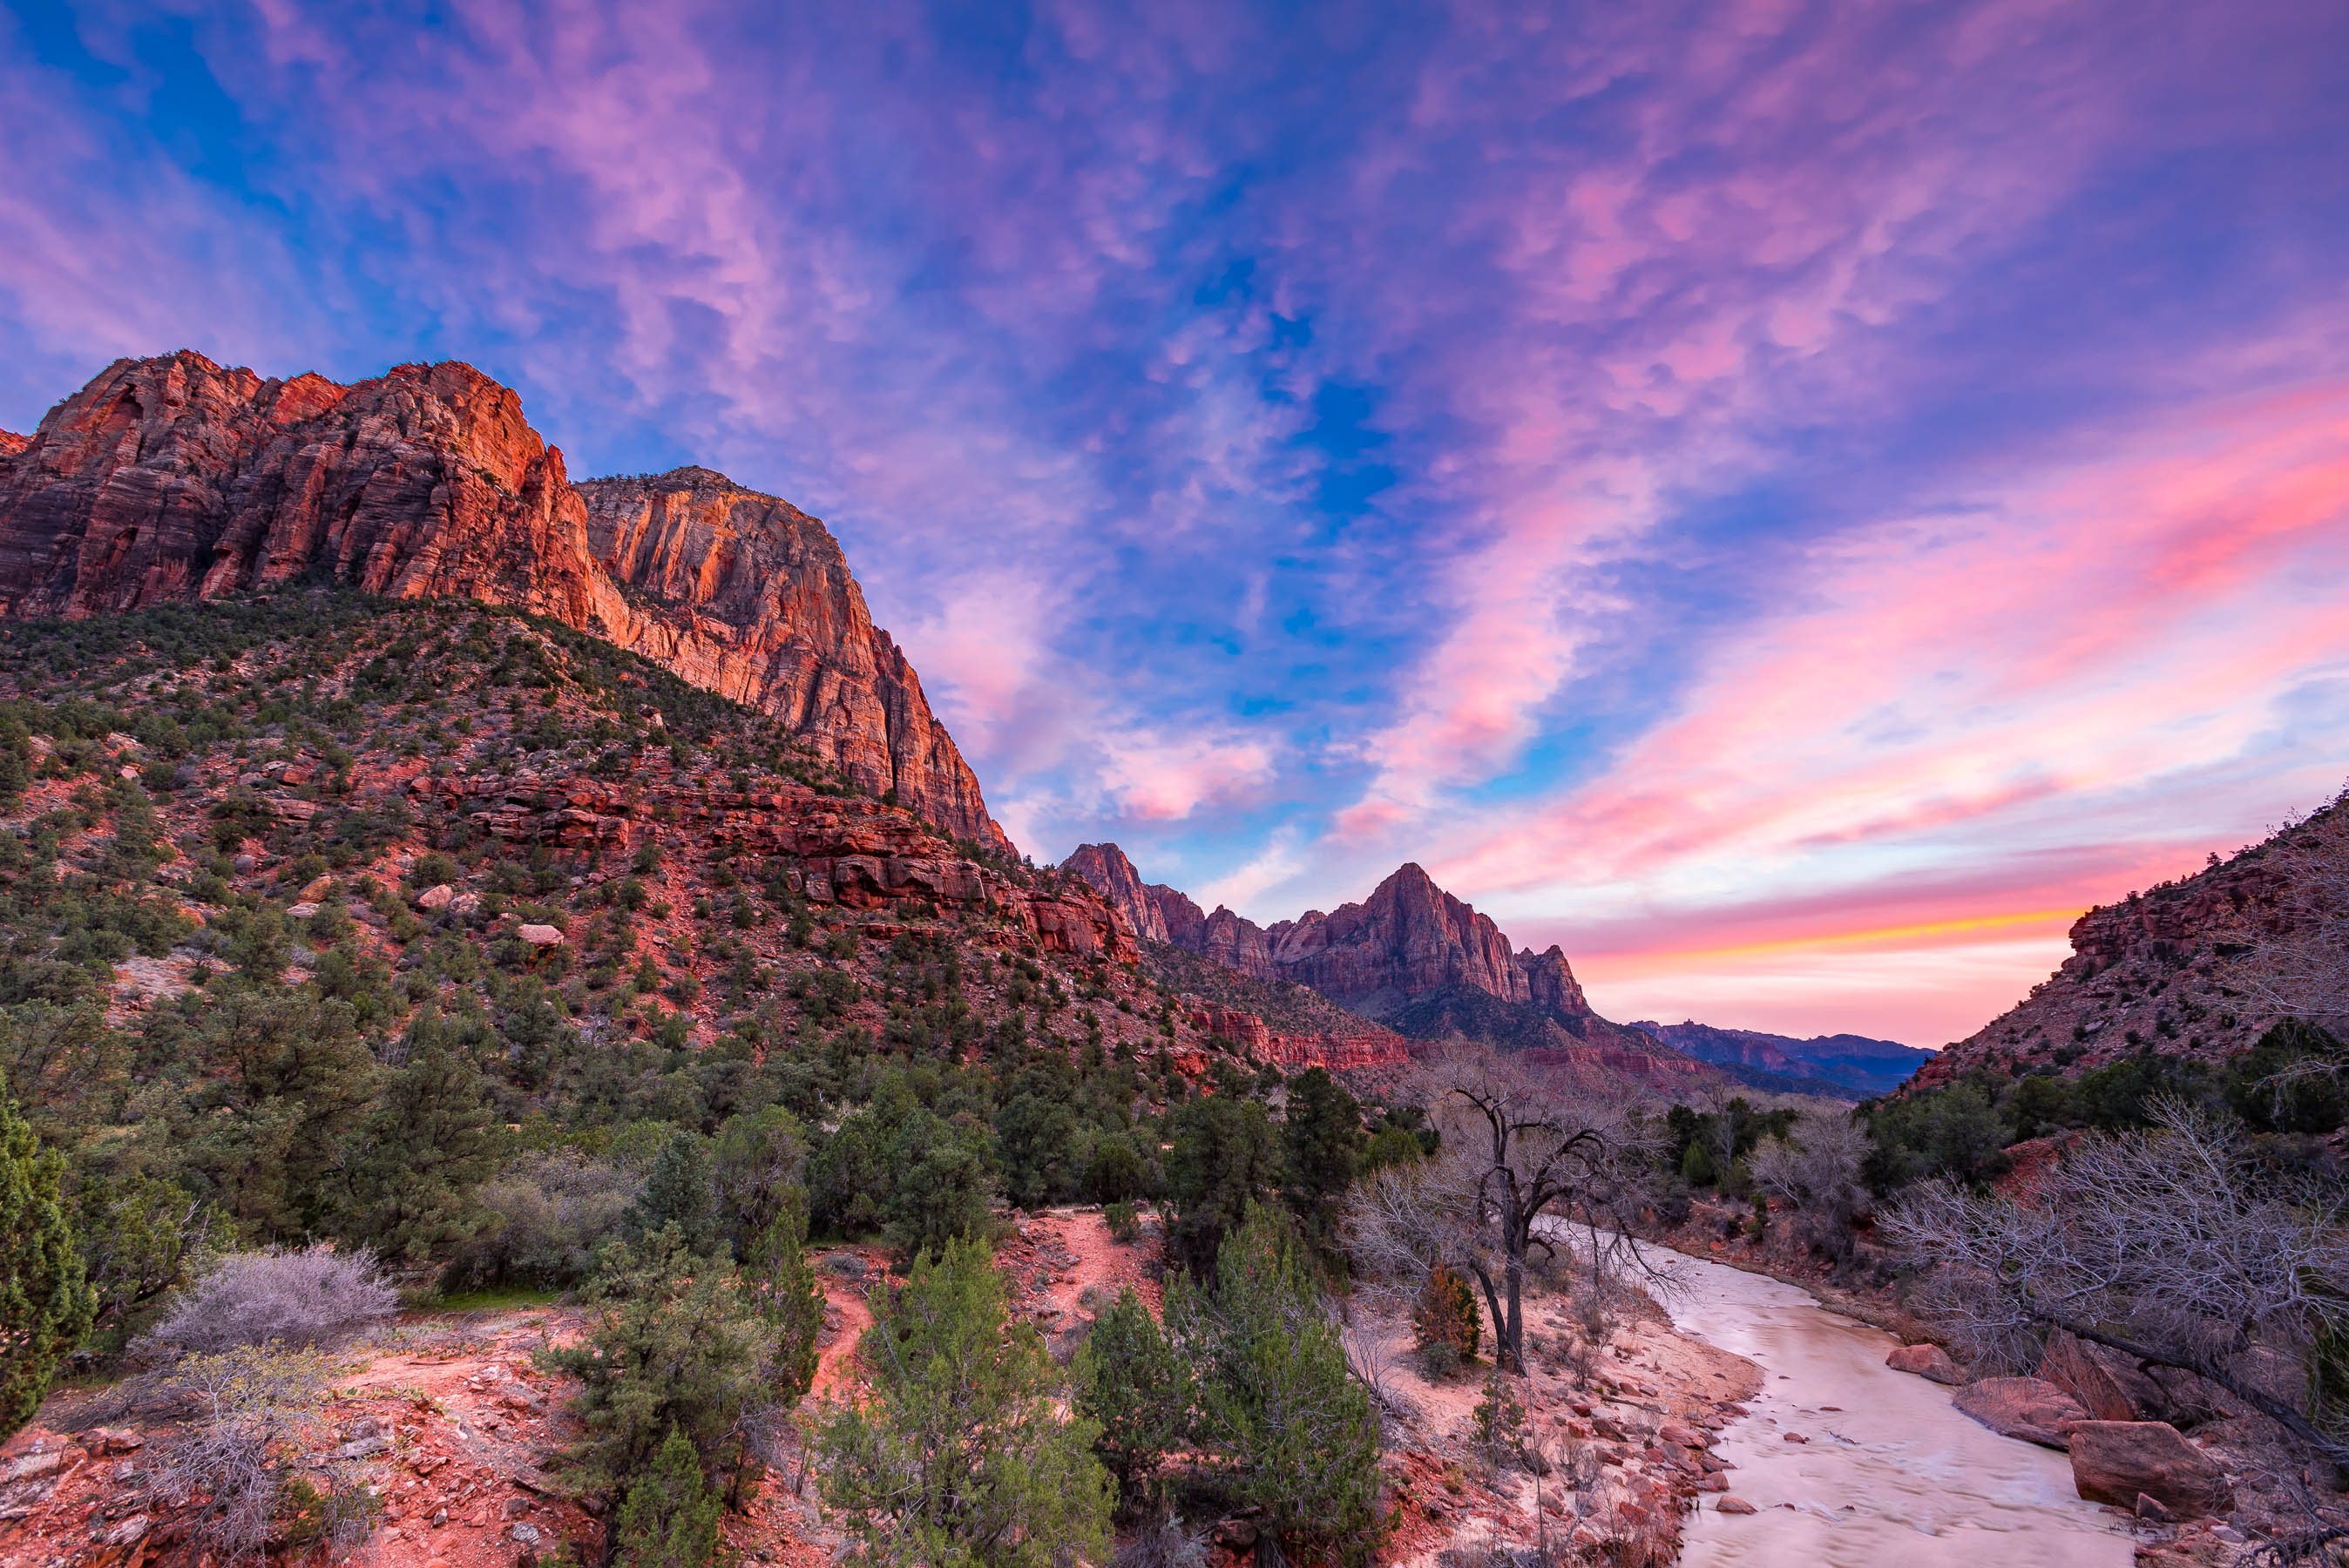 Sunset in Zion National Park